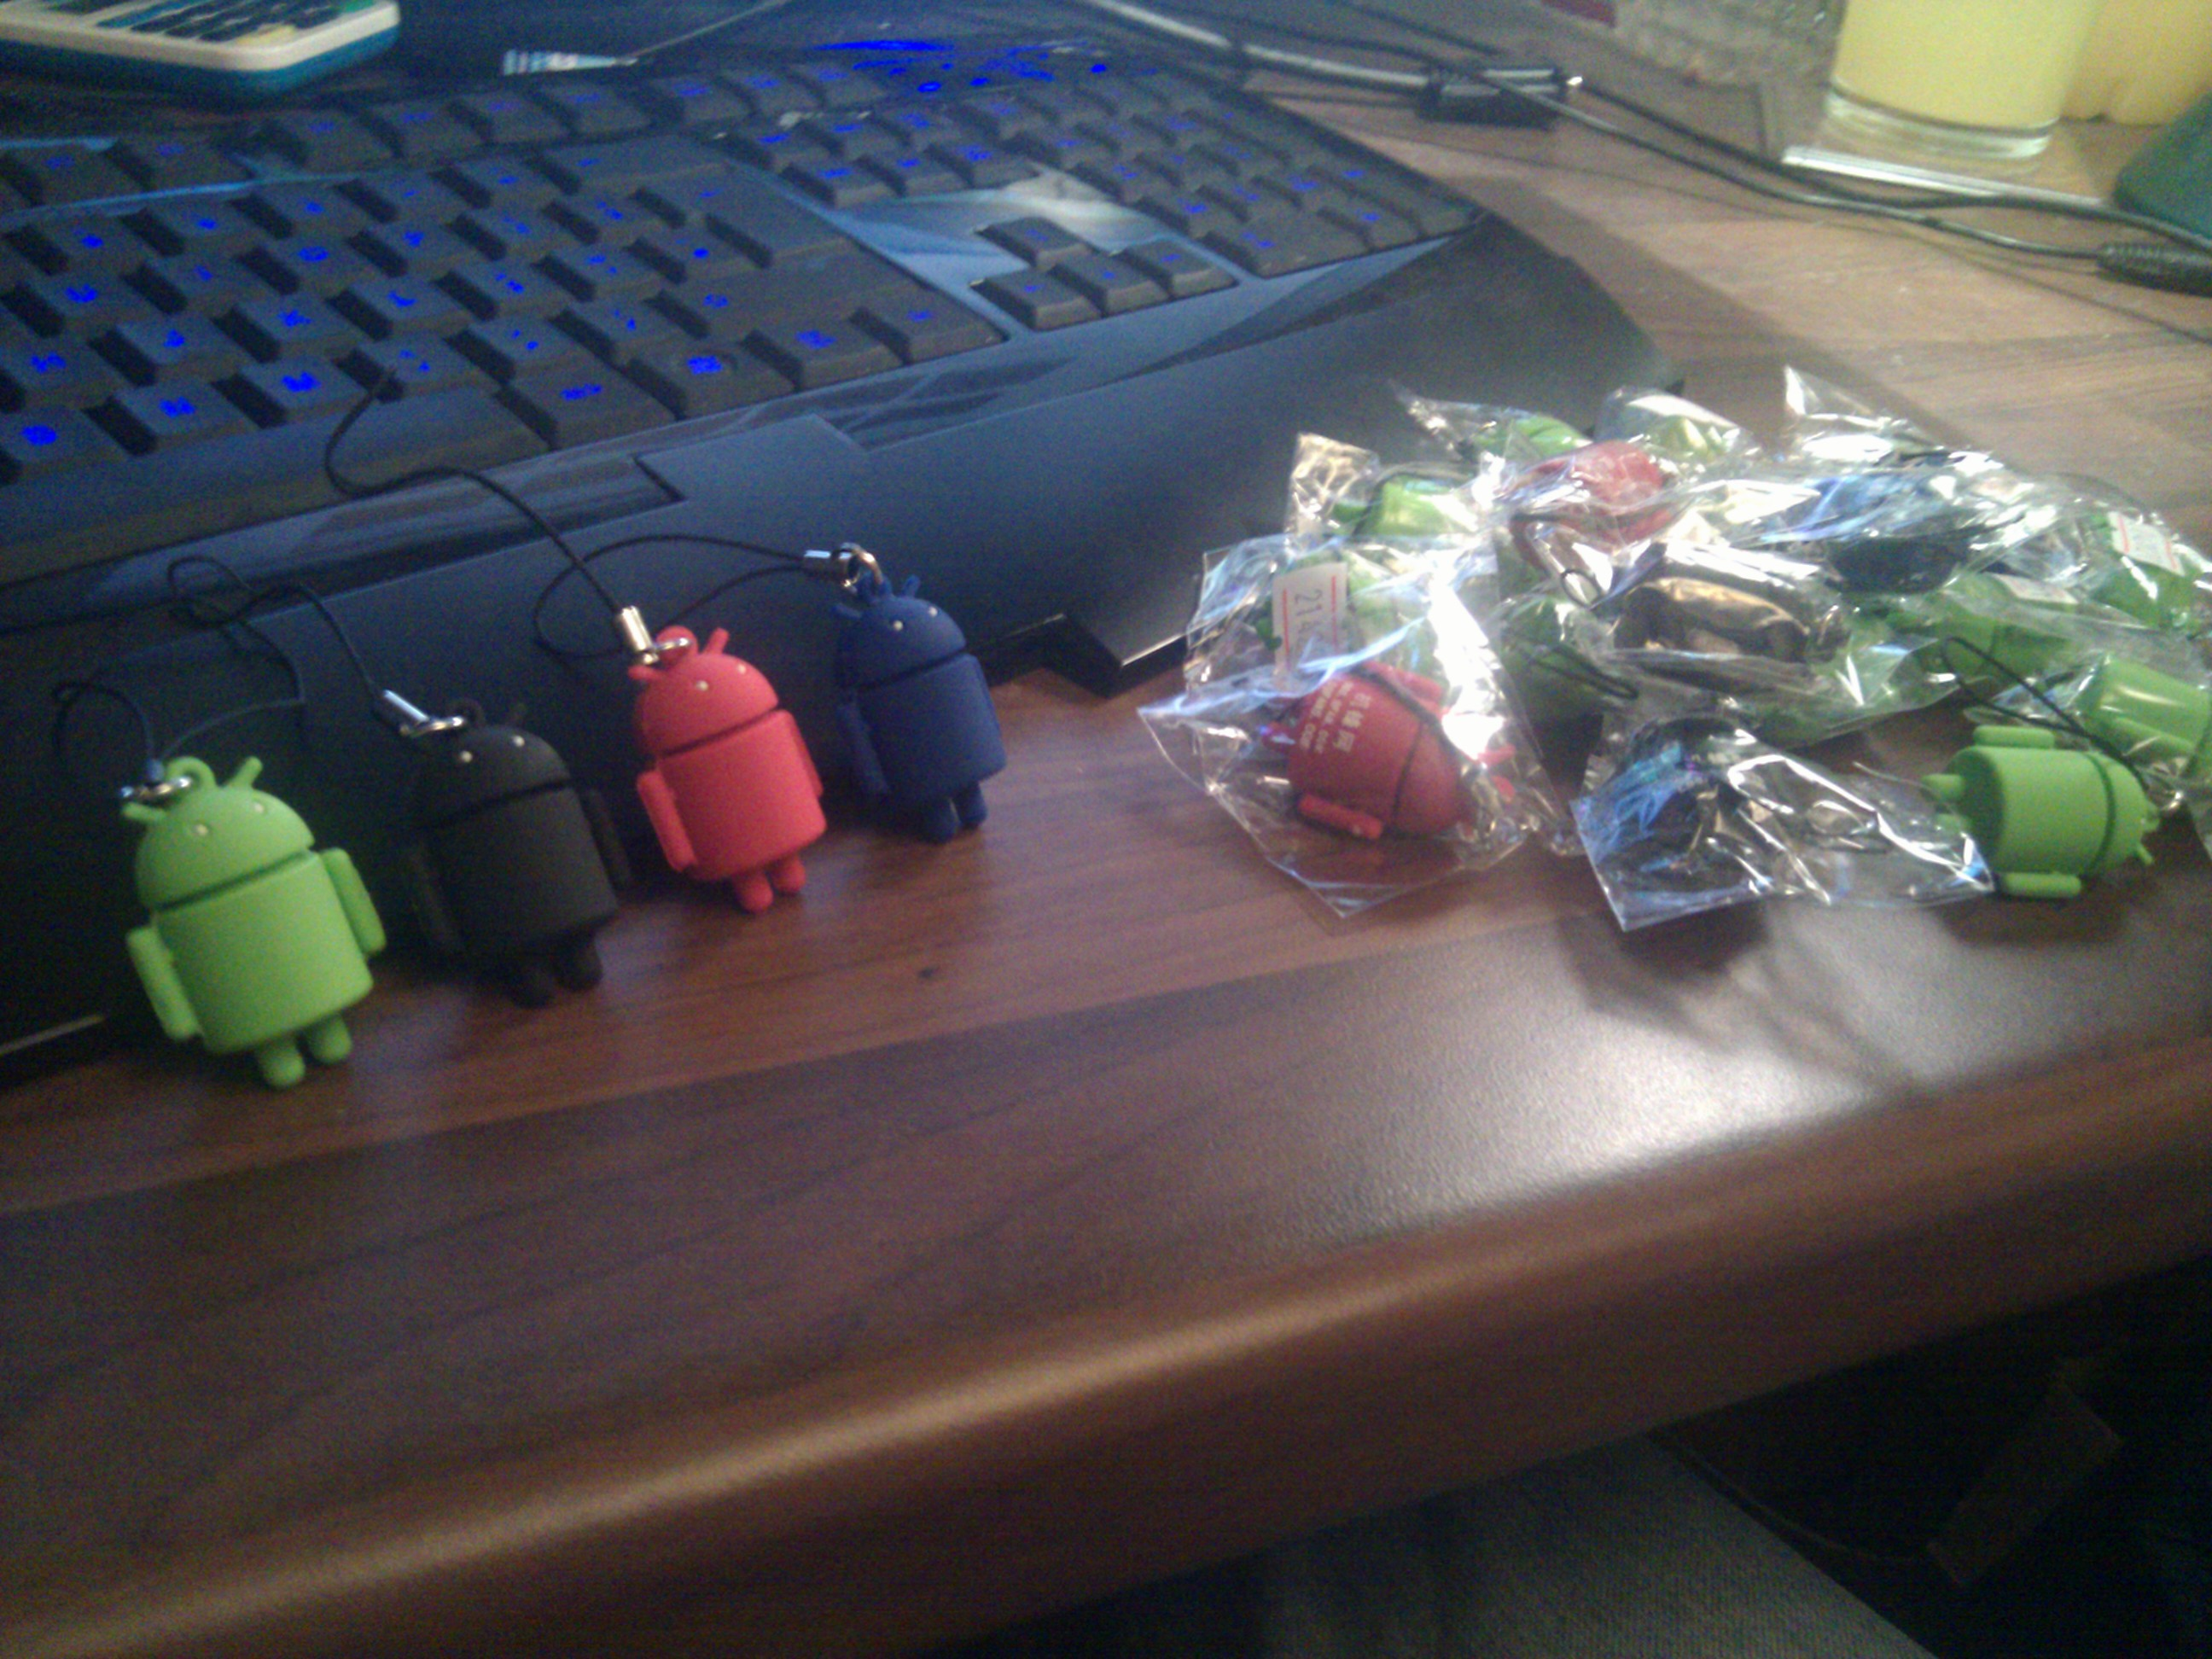 lots of multi-color android keyrings